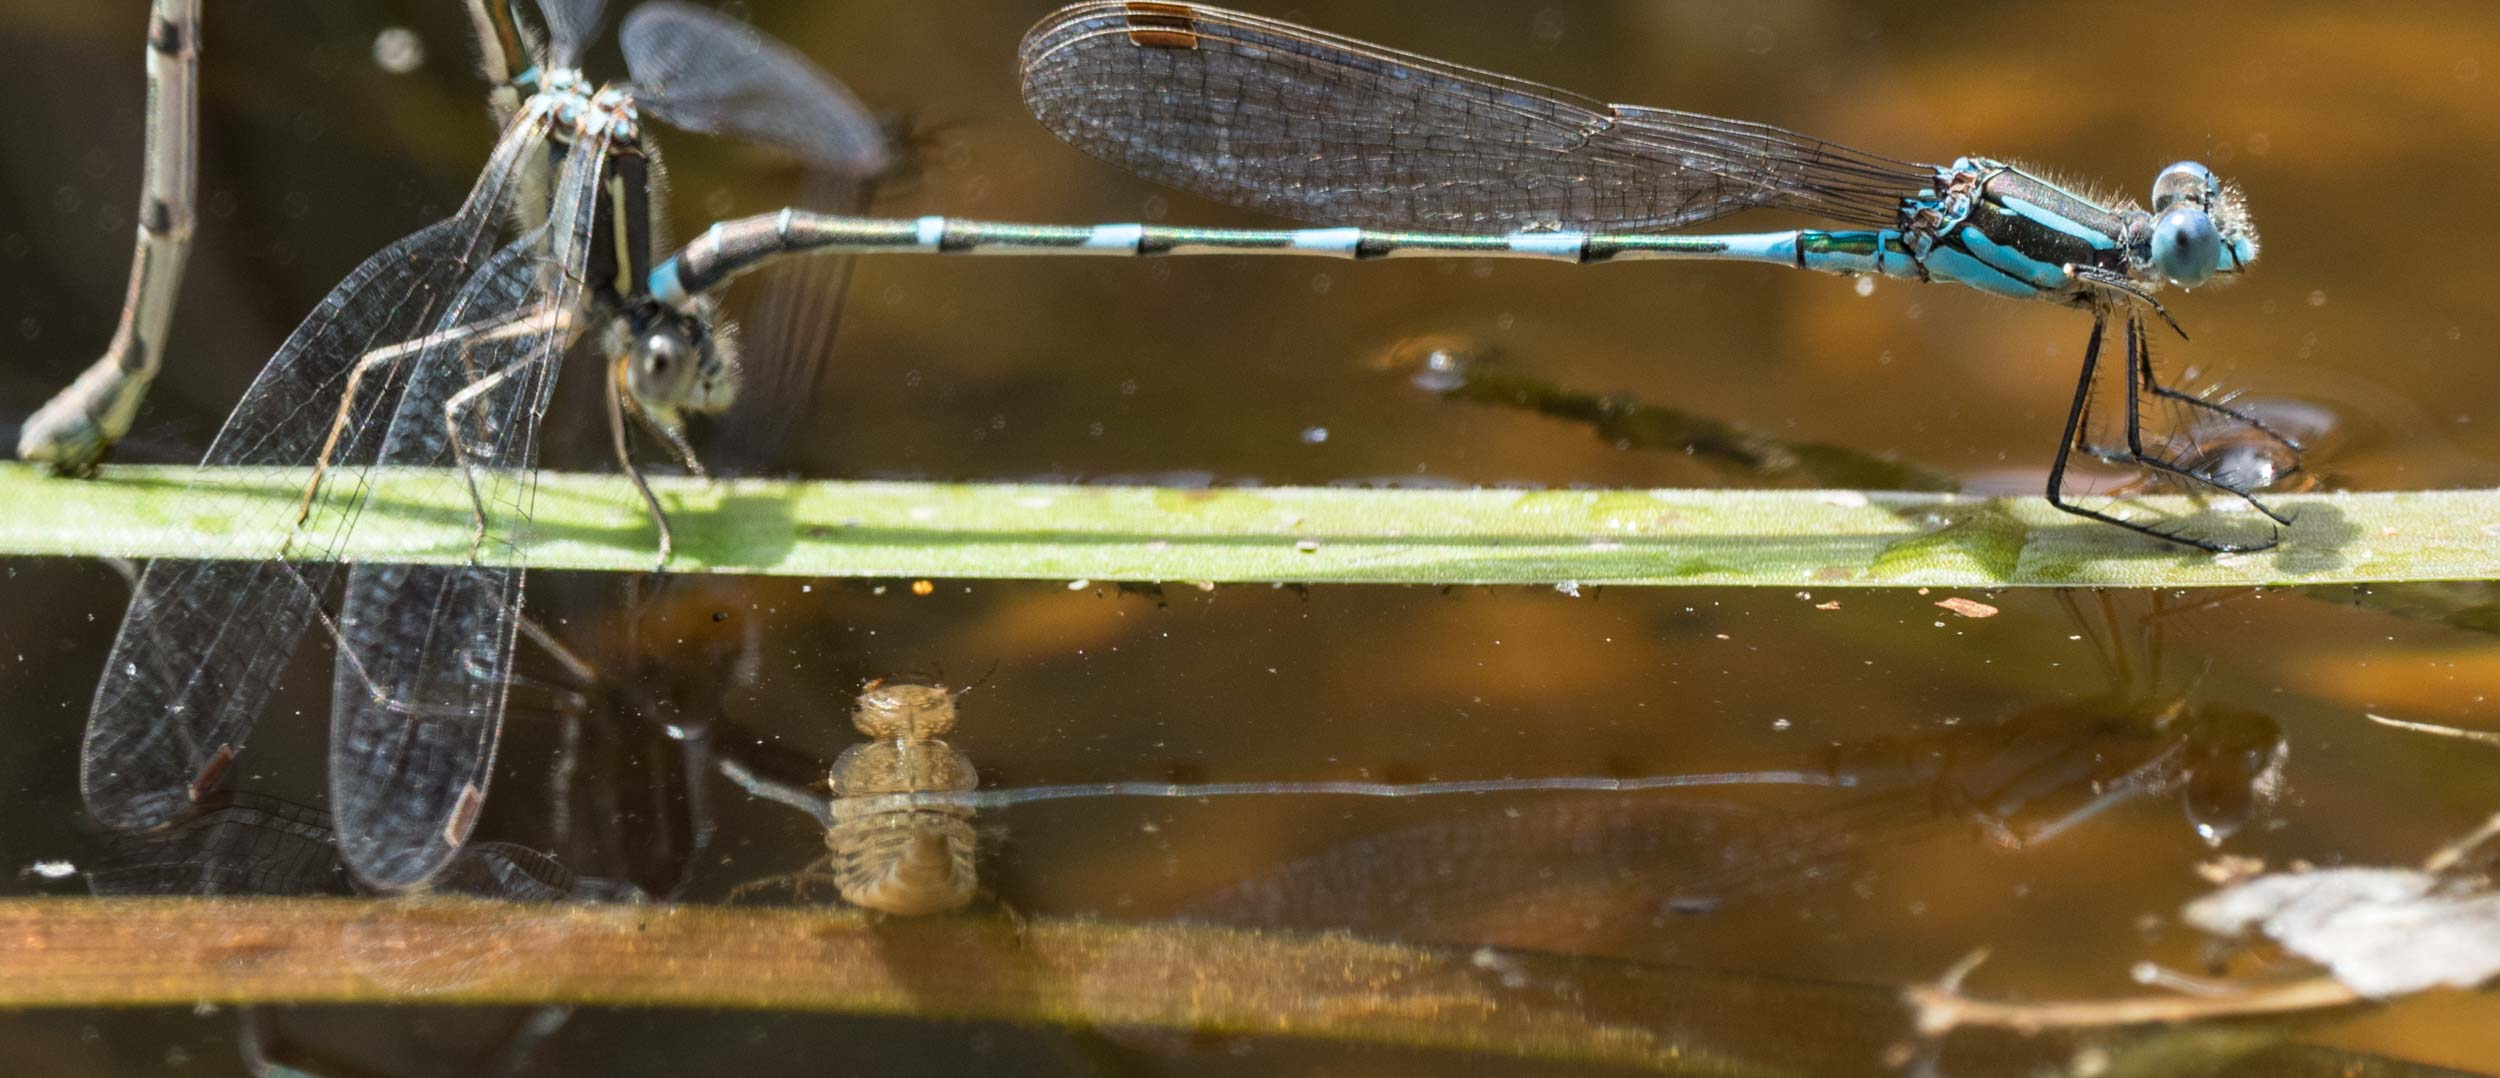 Diving Beetle larva - these voracious predators would be a match for damselfly hatchlings, and may even prey on the eggs.